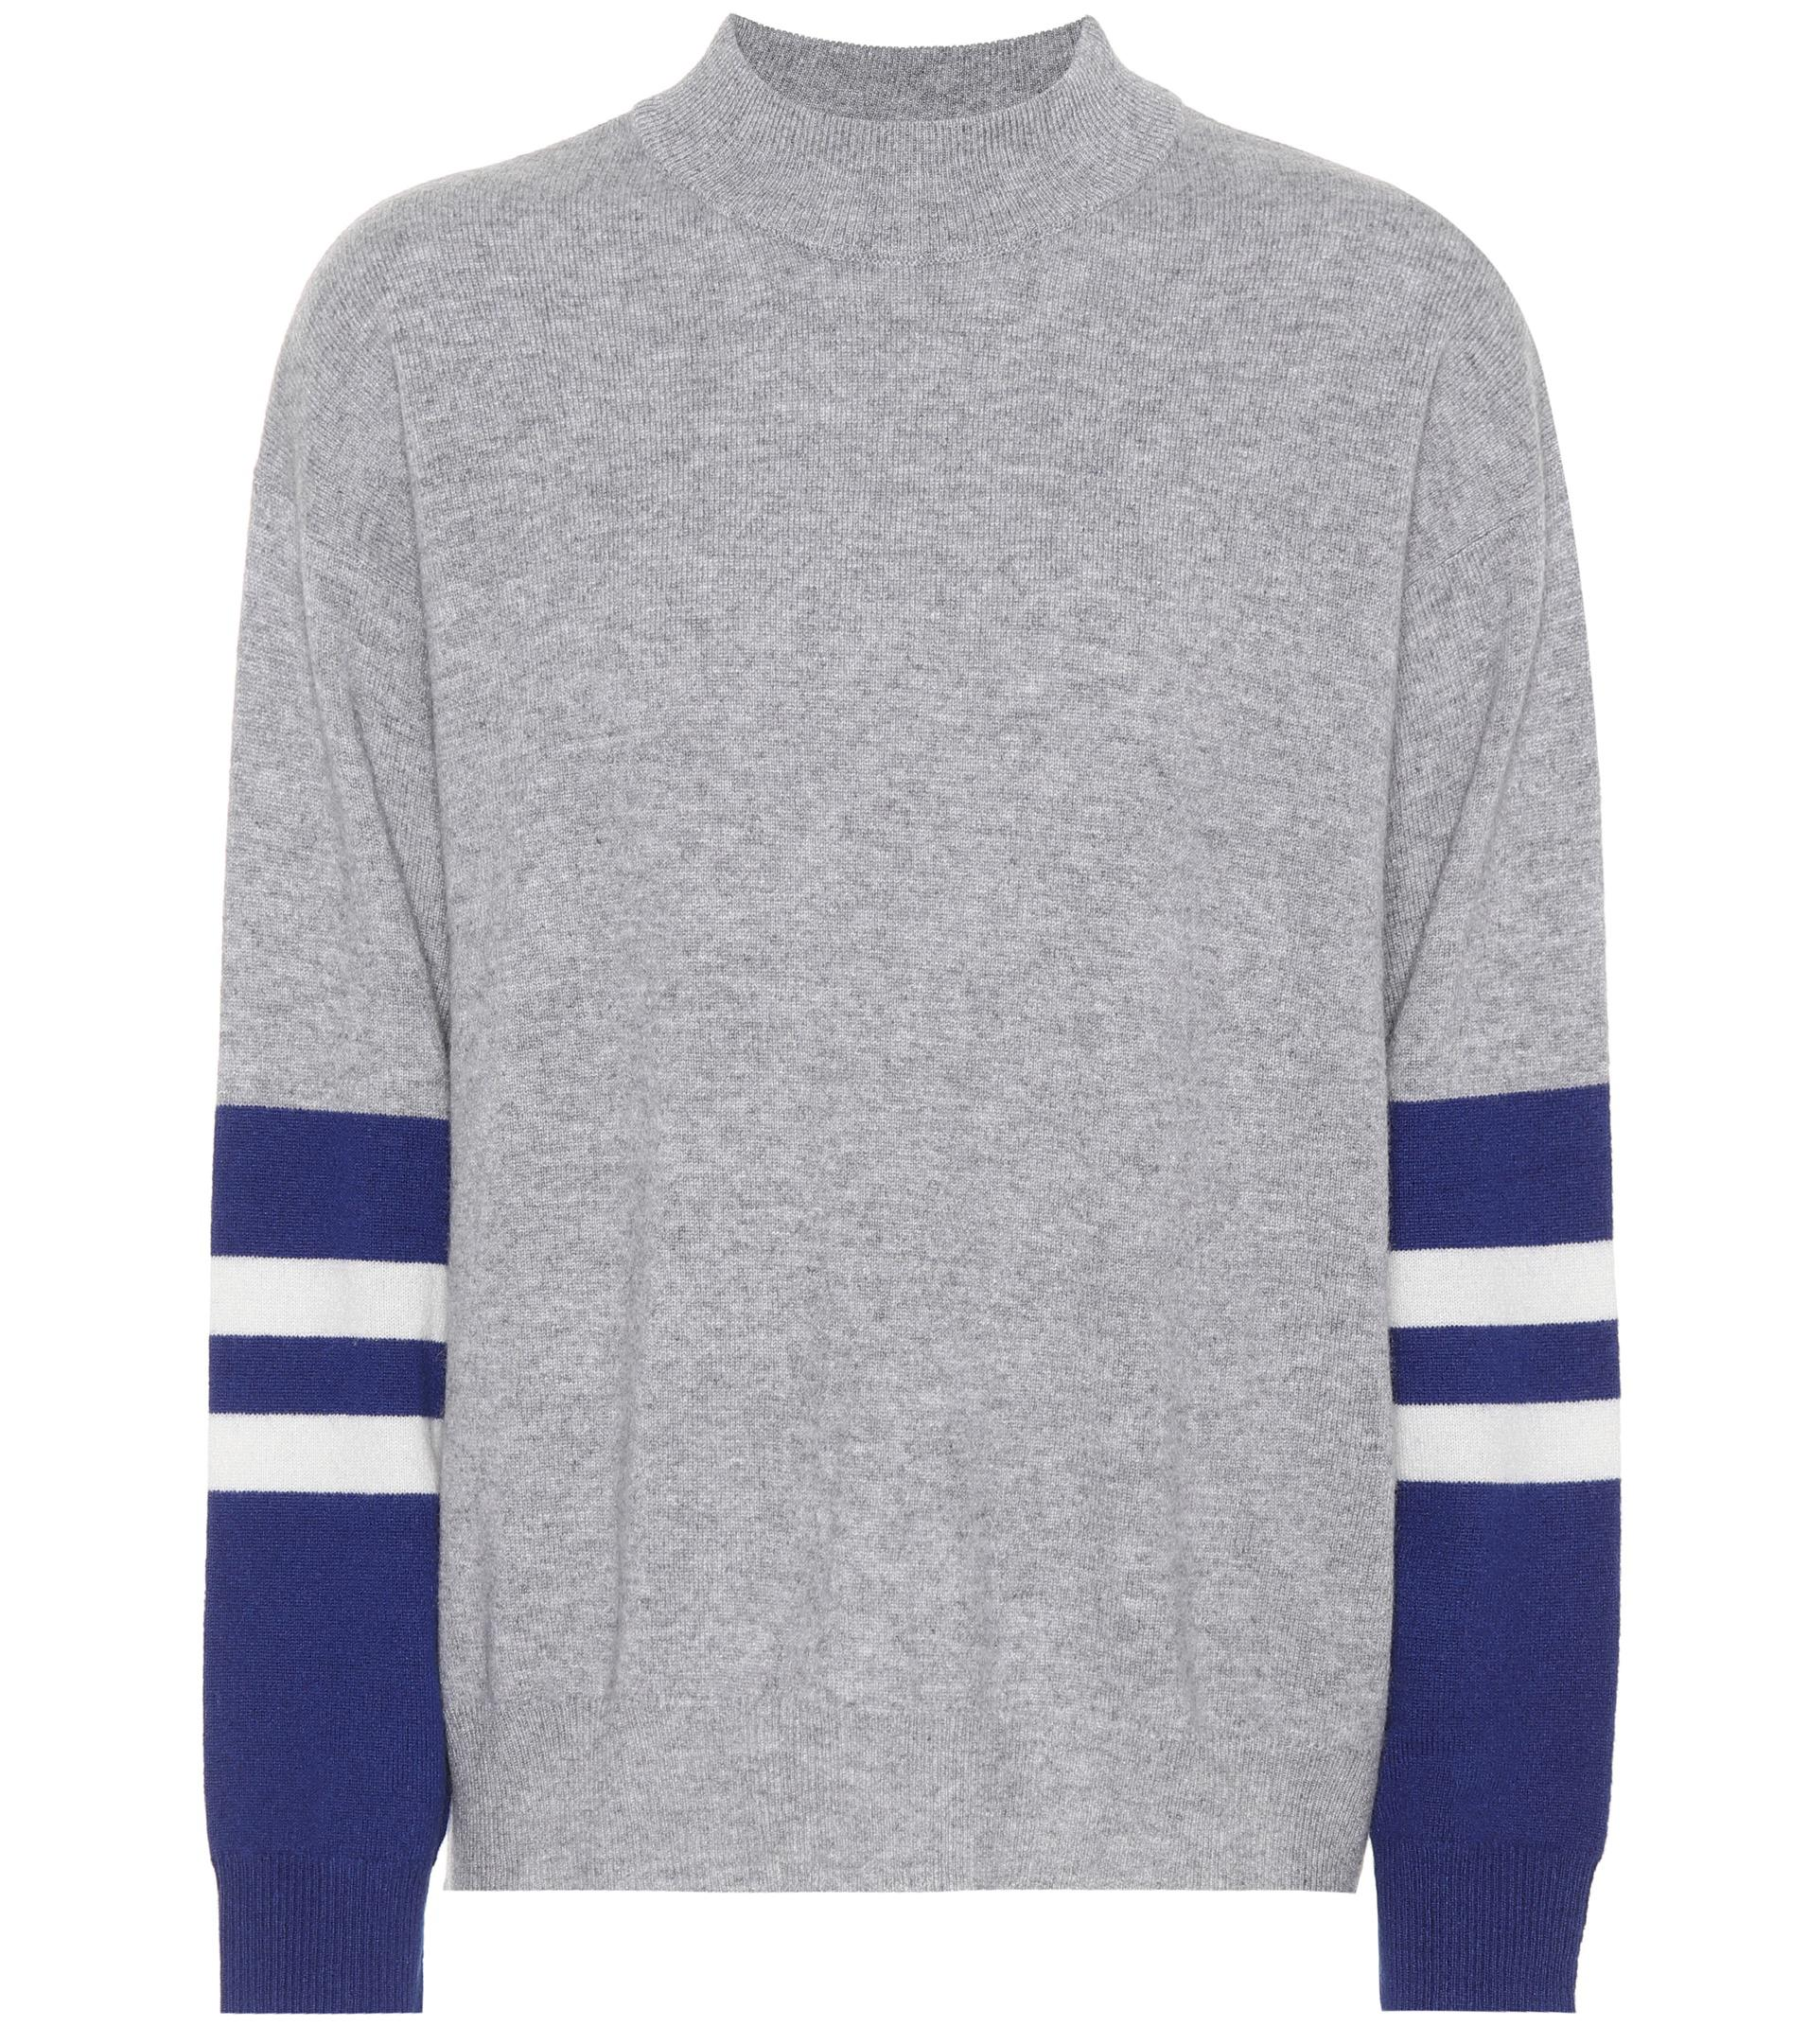 Lilian cashmere sweater Velvet Where To Buy Cheap Real y3v2kaw3